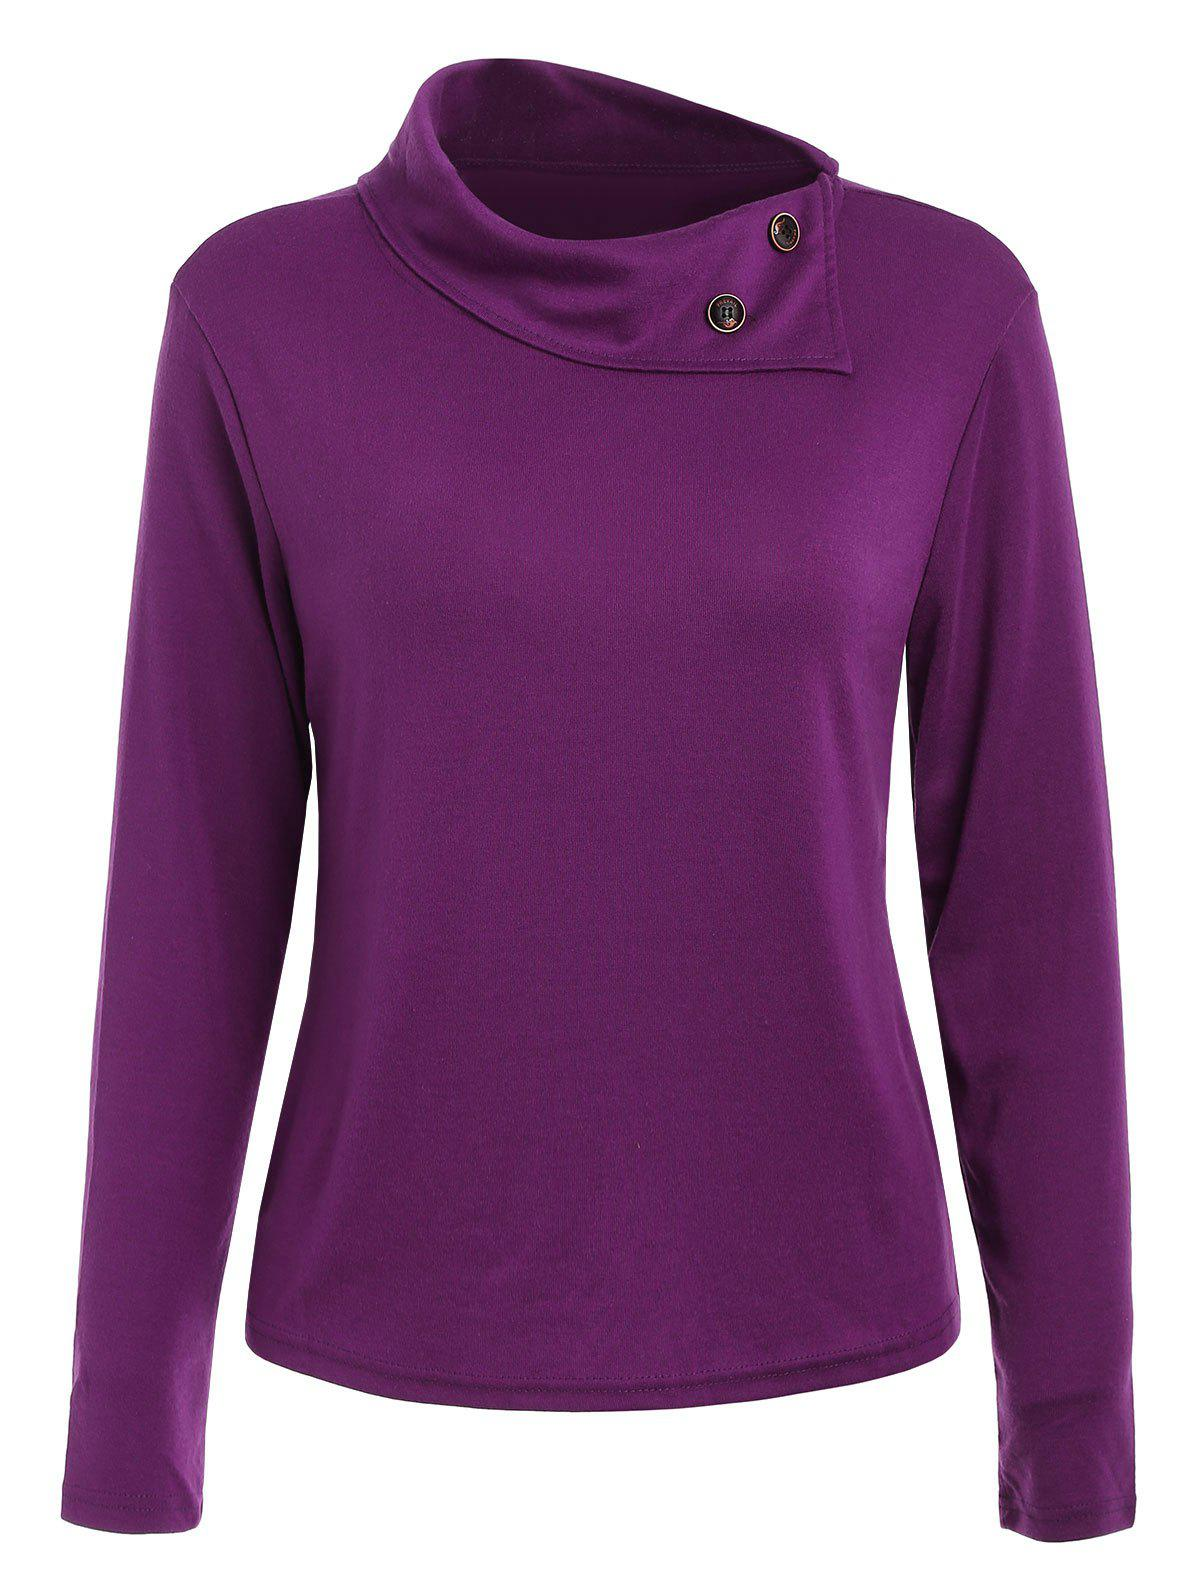 Simple Style Buttoned Cowl Neck Solid Color Long Sleeve T-Shirt For Women - PURPLE XL